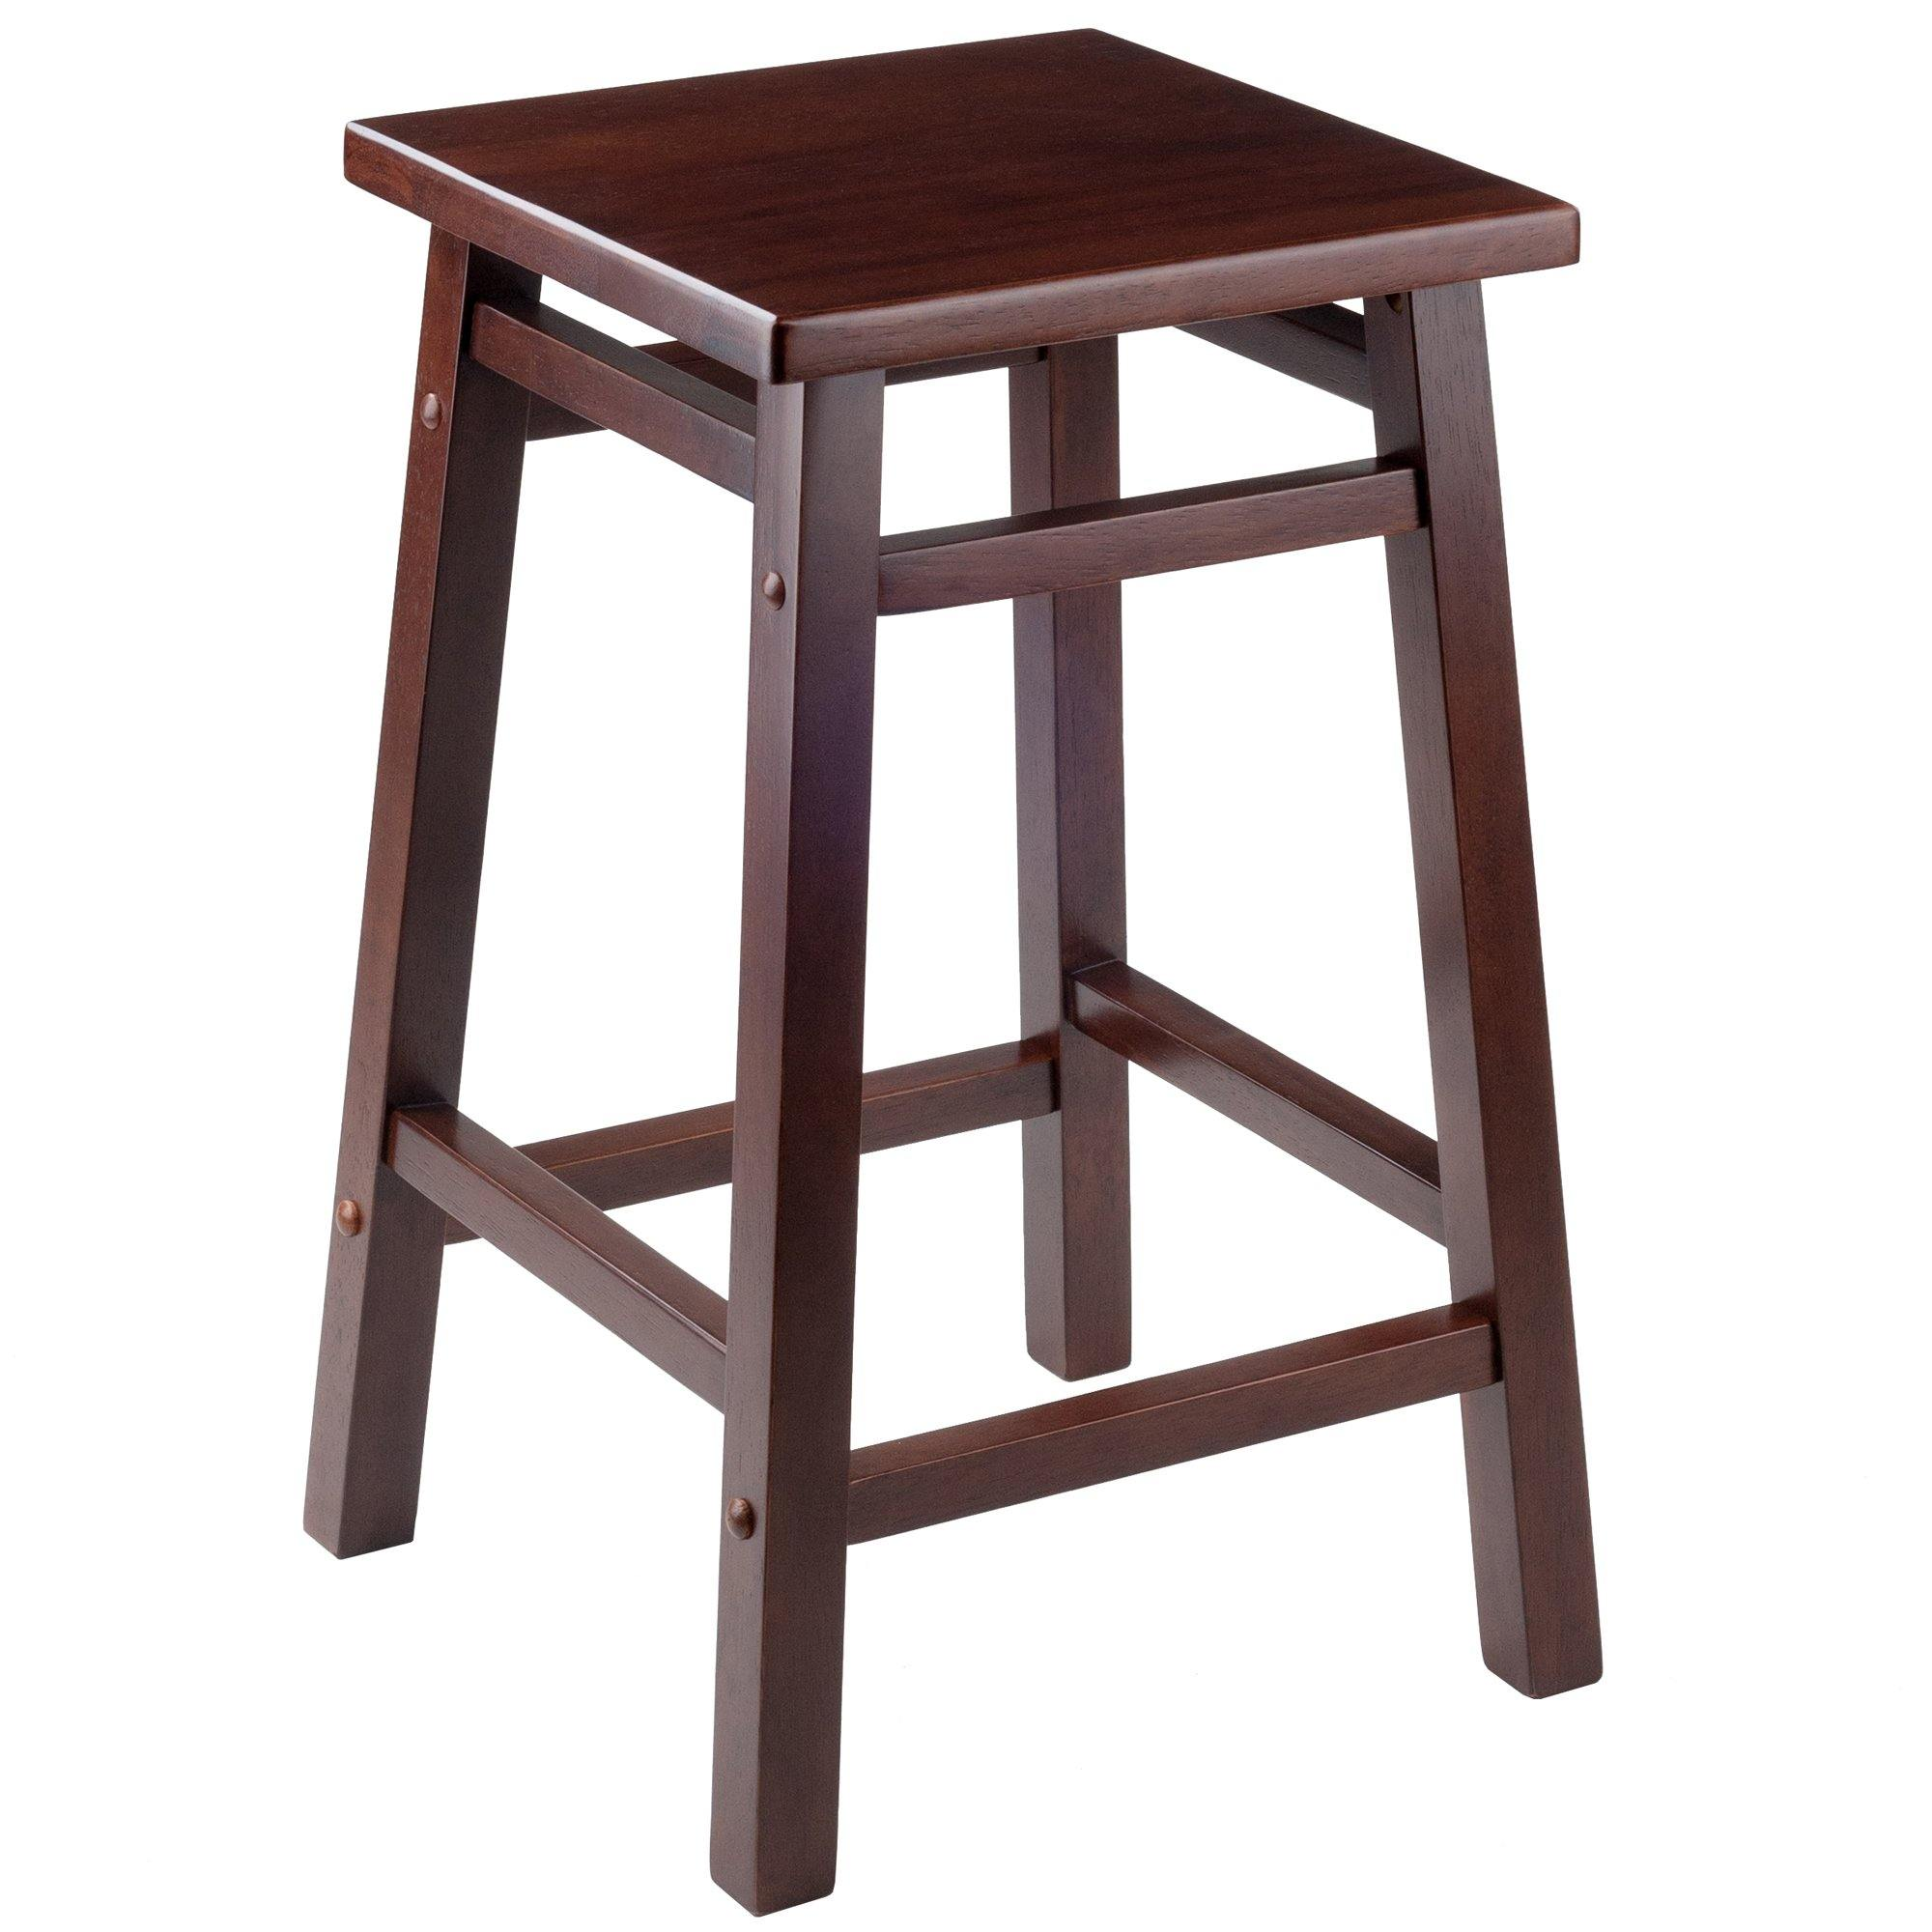 Carter Square Seat Counter Stool, Walnut - My USA Furniture